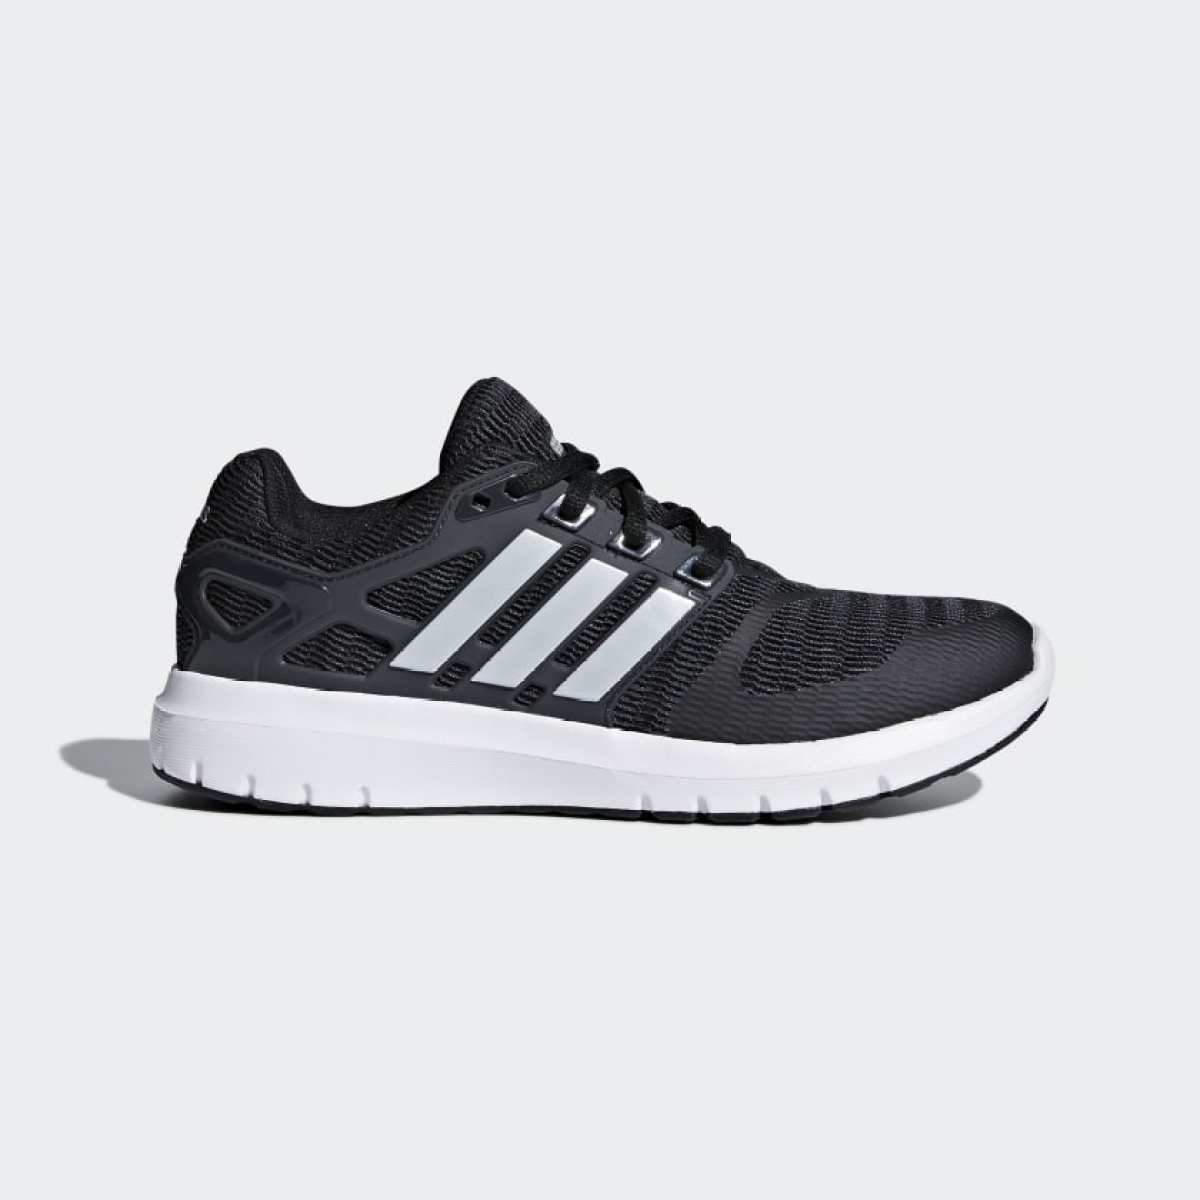 Adidas Core Black Energy Cloud V Running Shoes For Men B44846